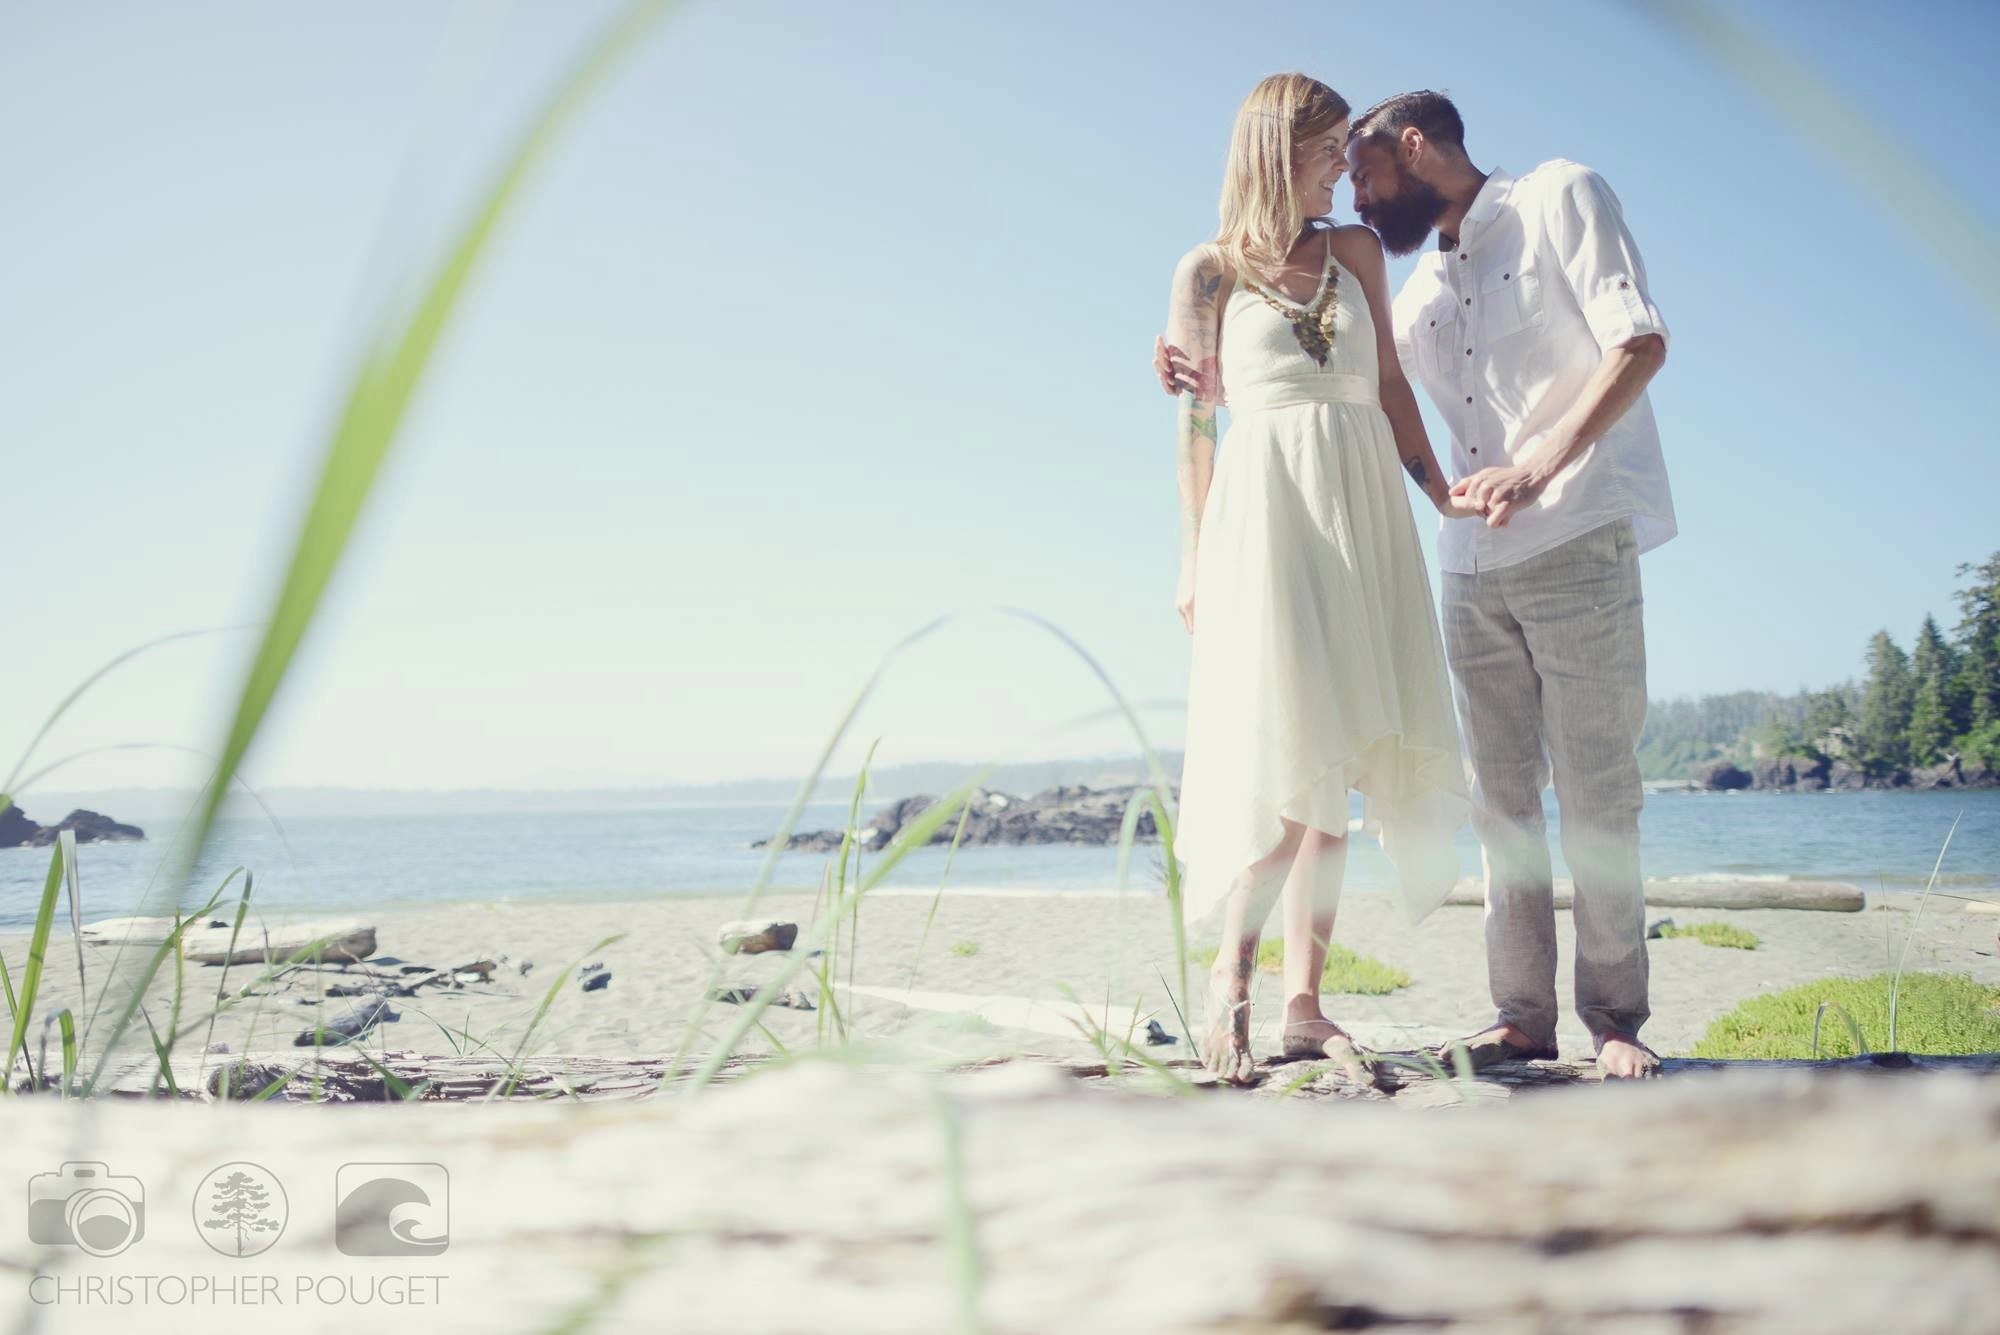 Chris Pouget Photography_Barefoot Beach Bride and Groom